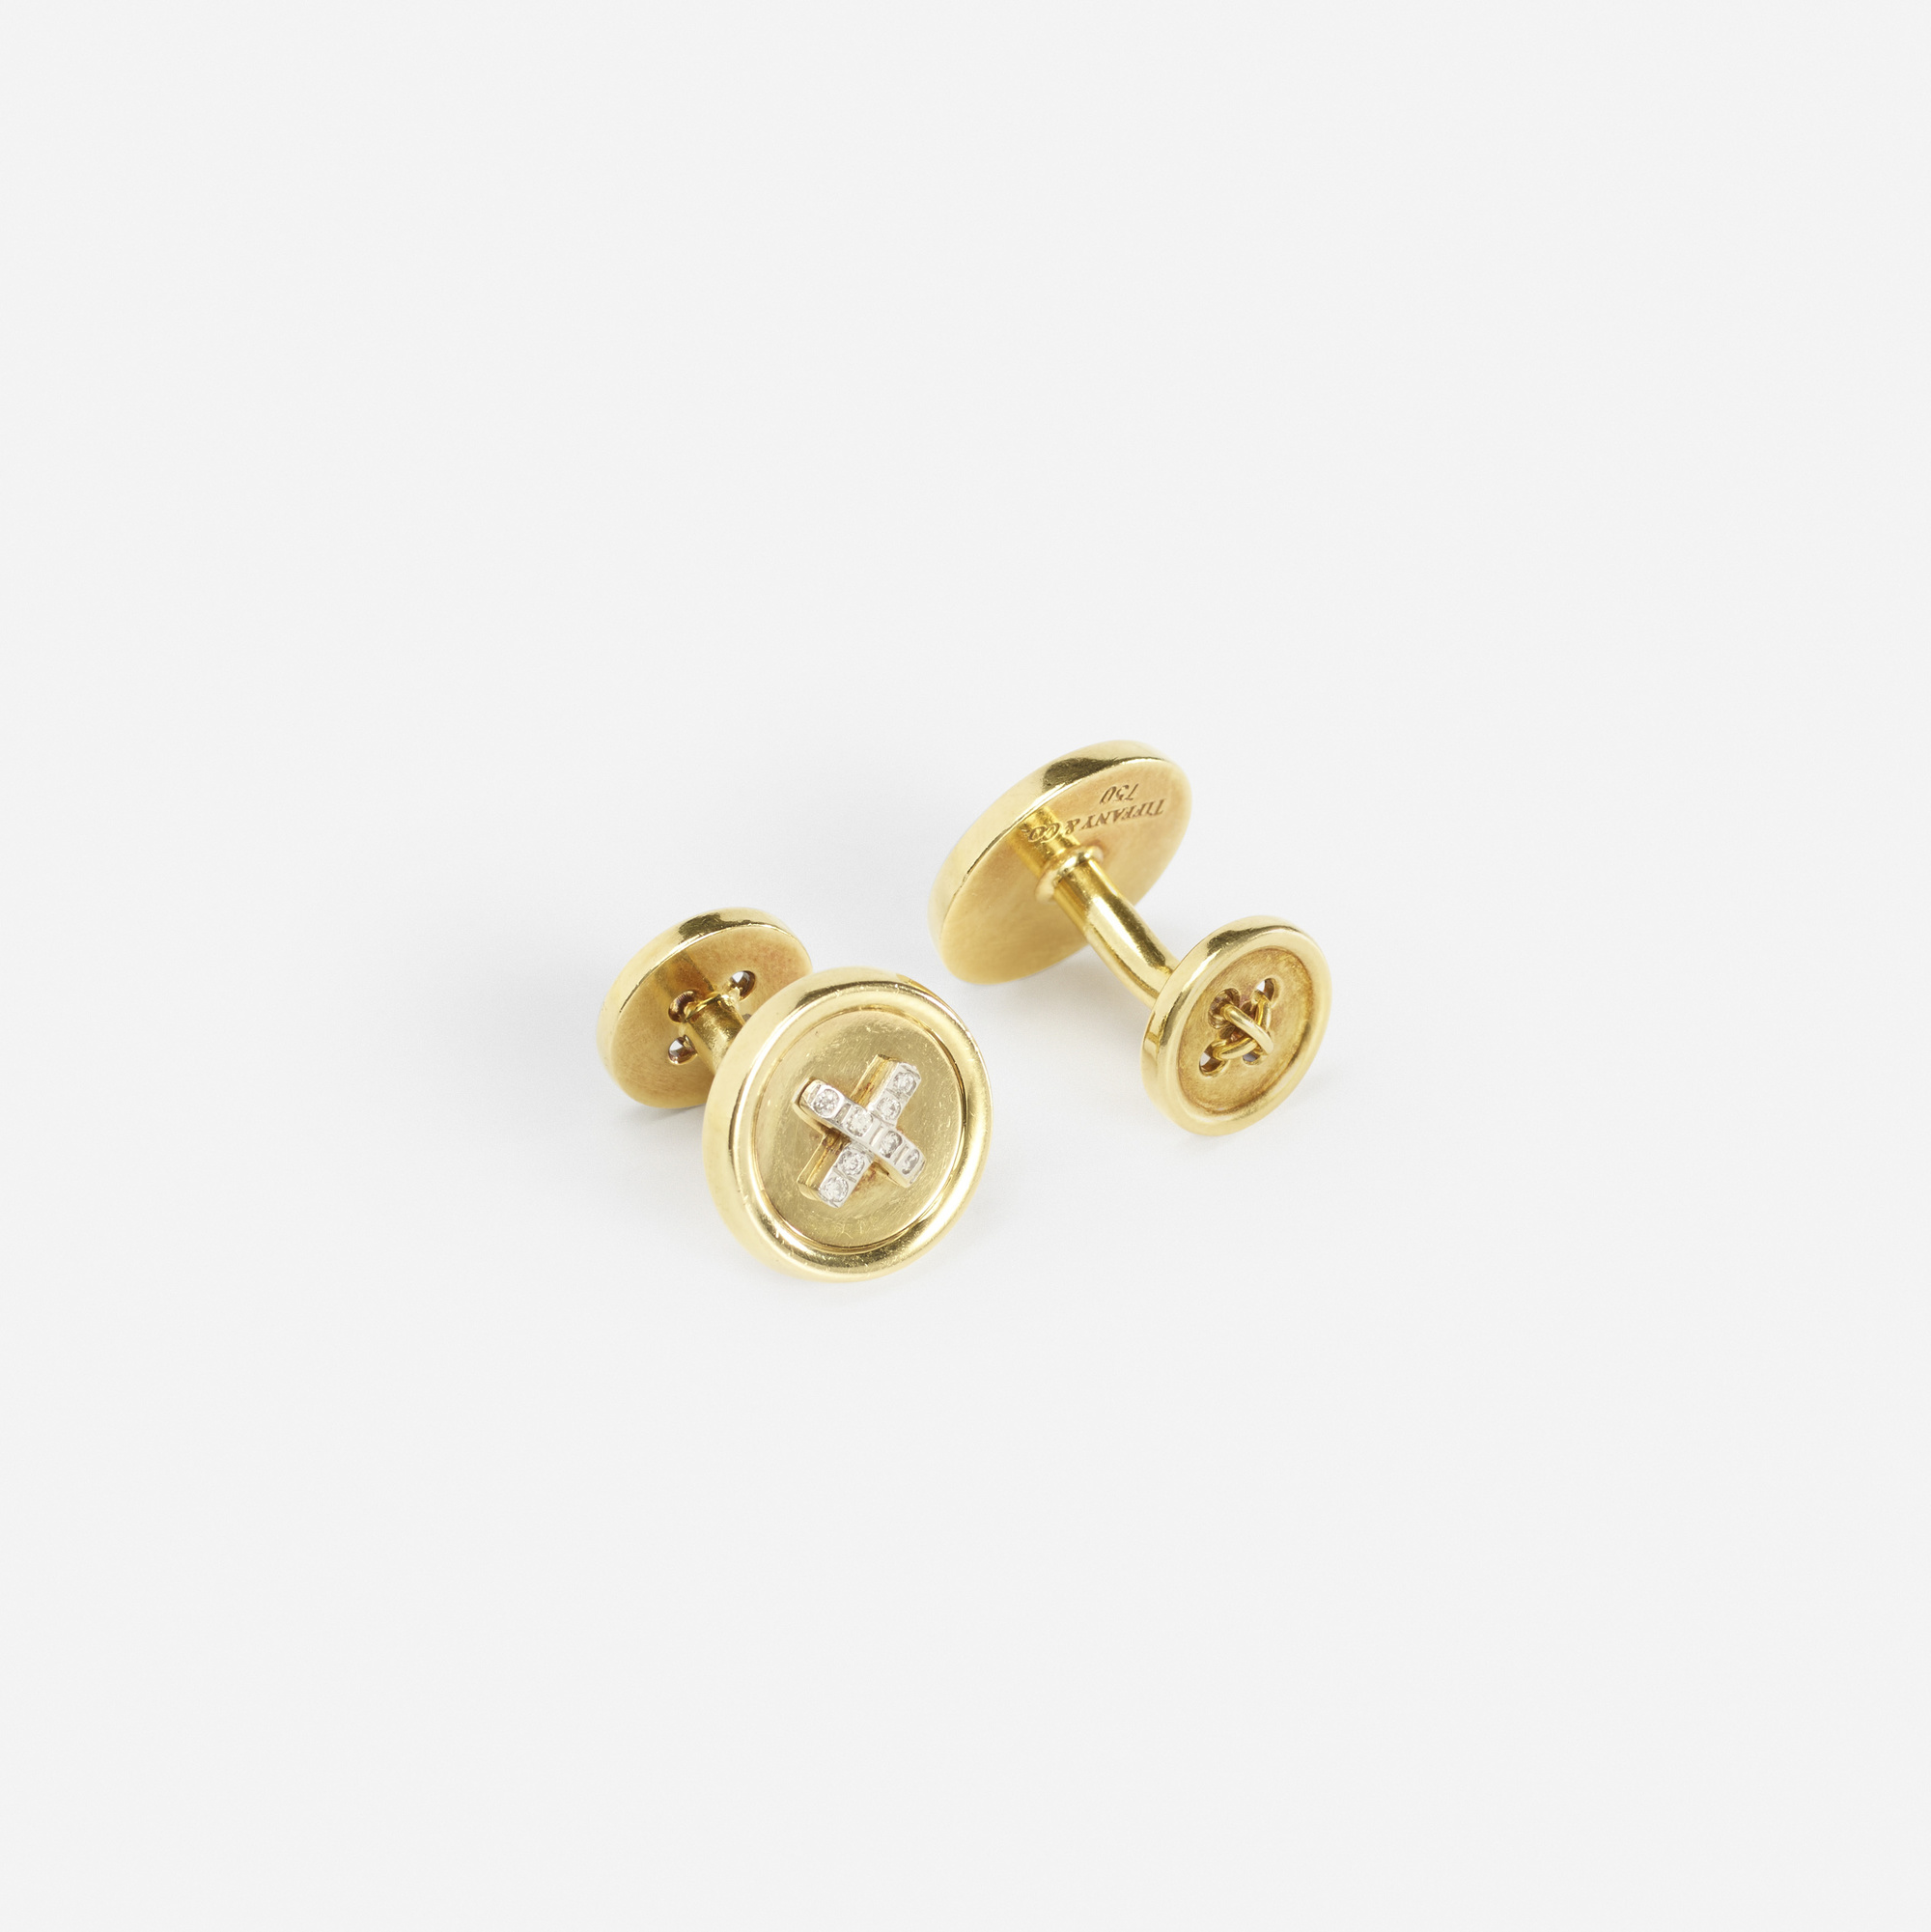 153: Tiffany & Co. / A pair of gold and diamond Button cufflinks (1 of 1)